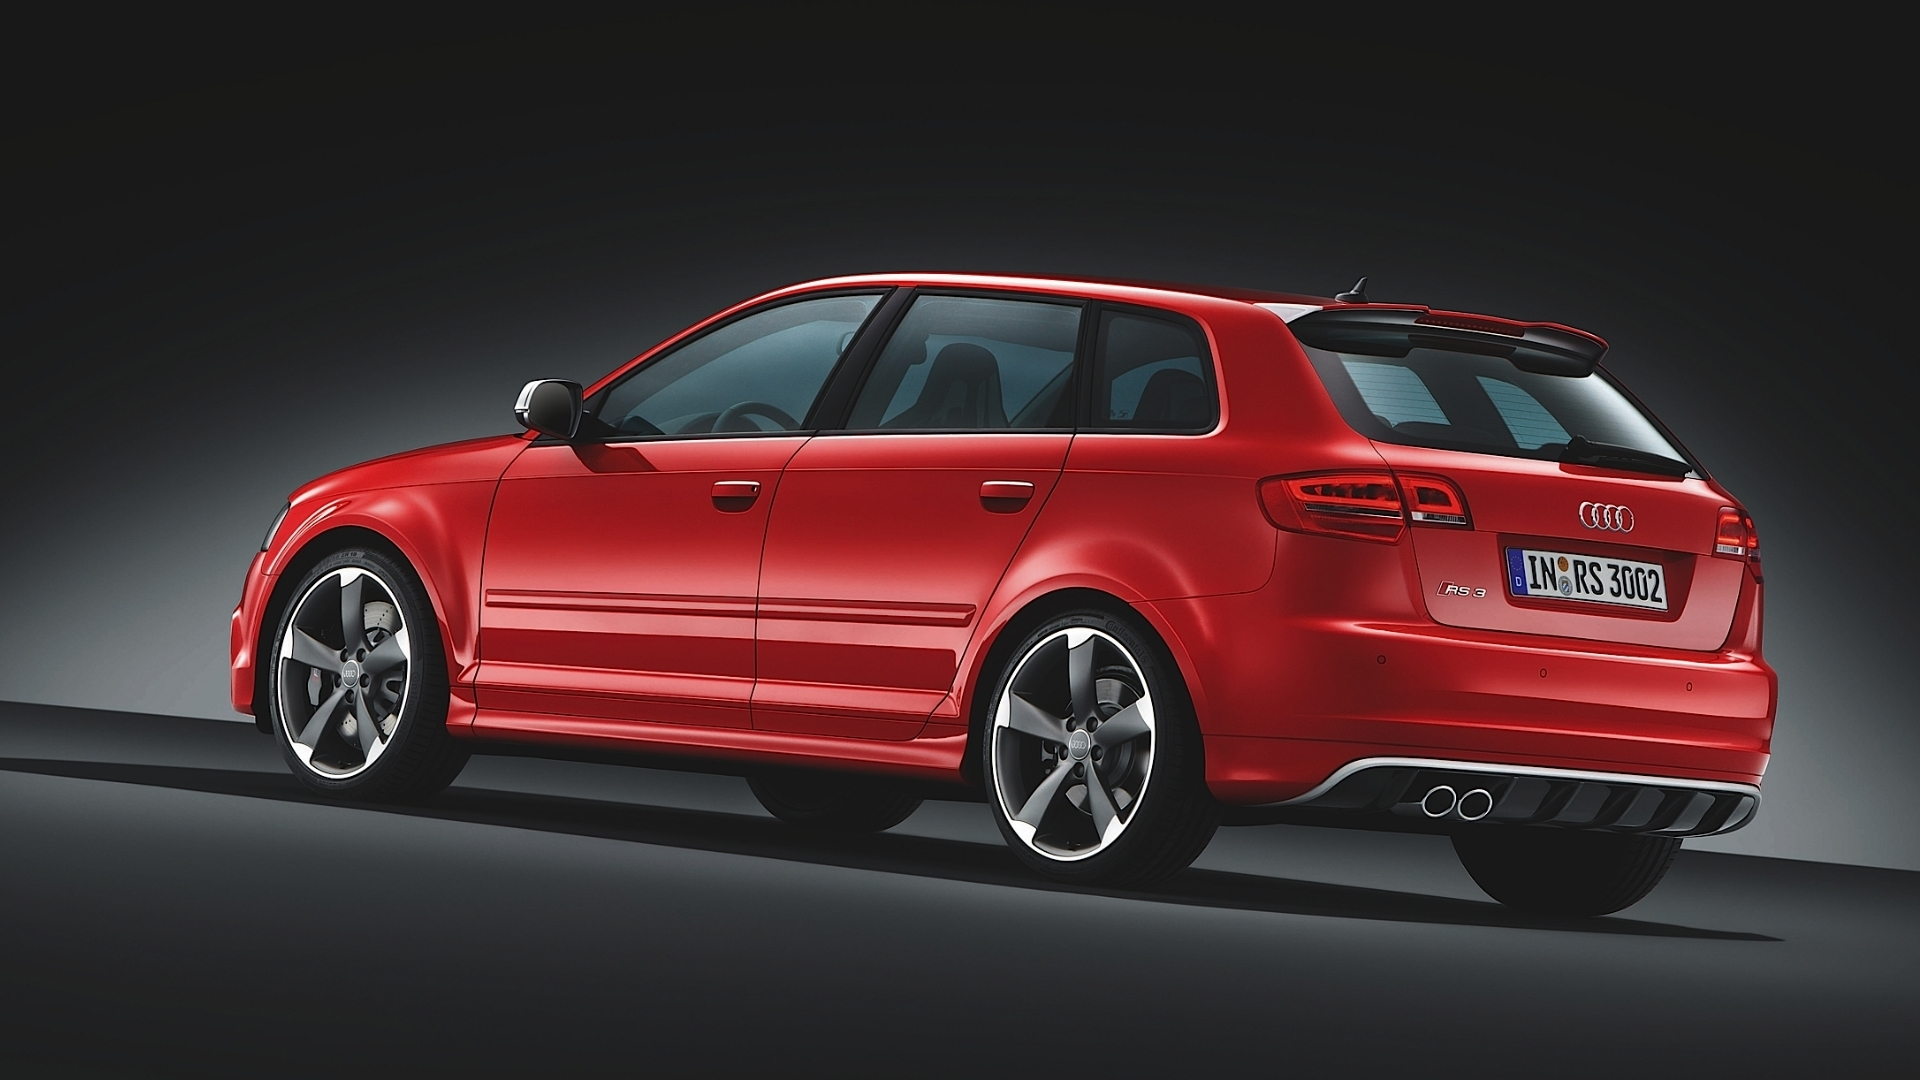 audi rs3 sportback (8pa) 2010 wallpaper #10